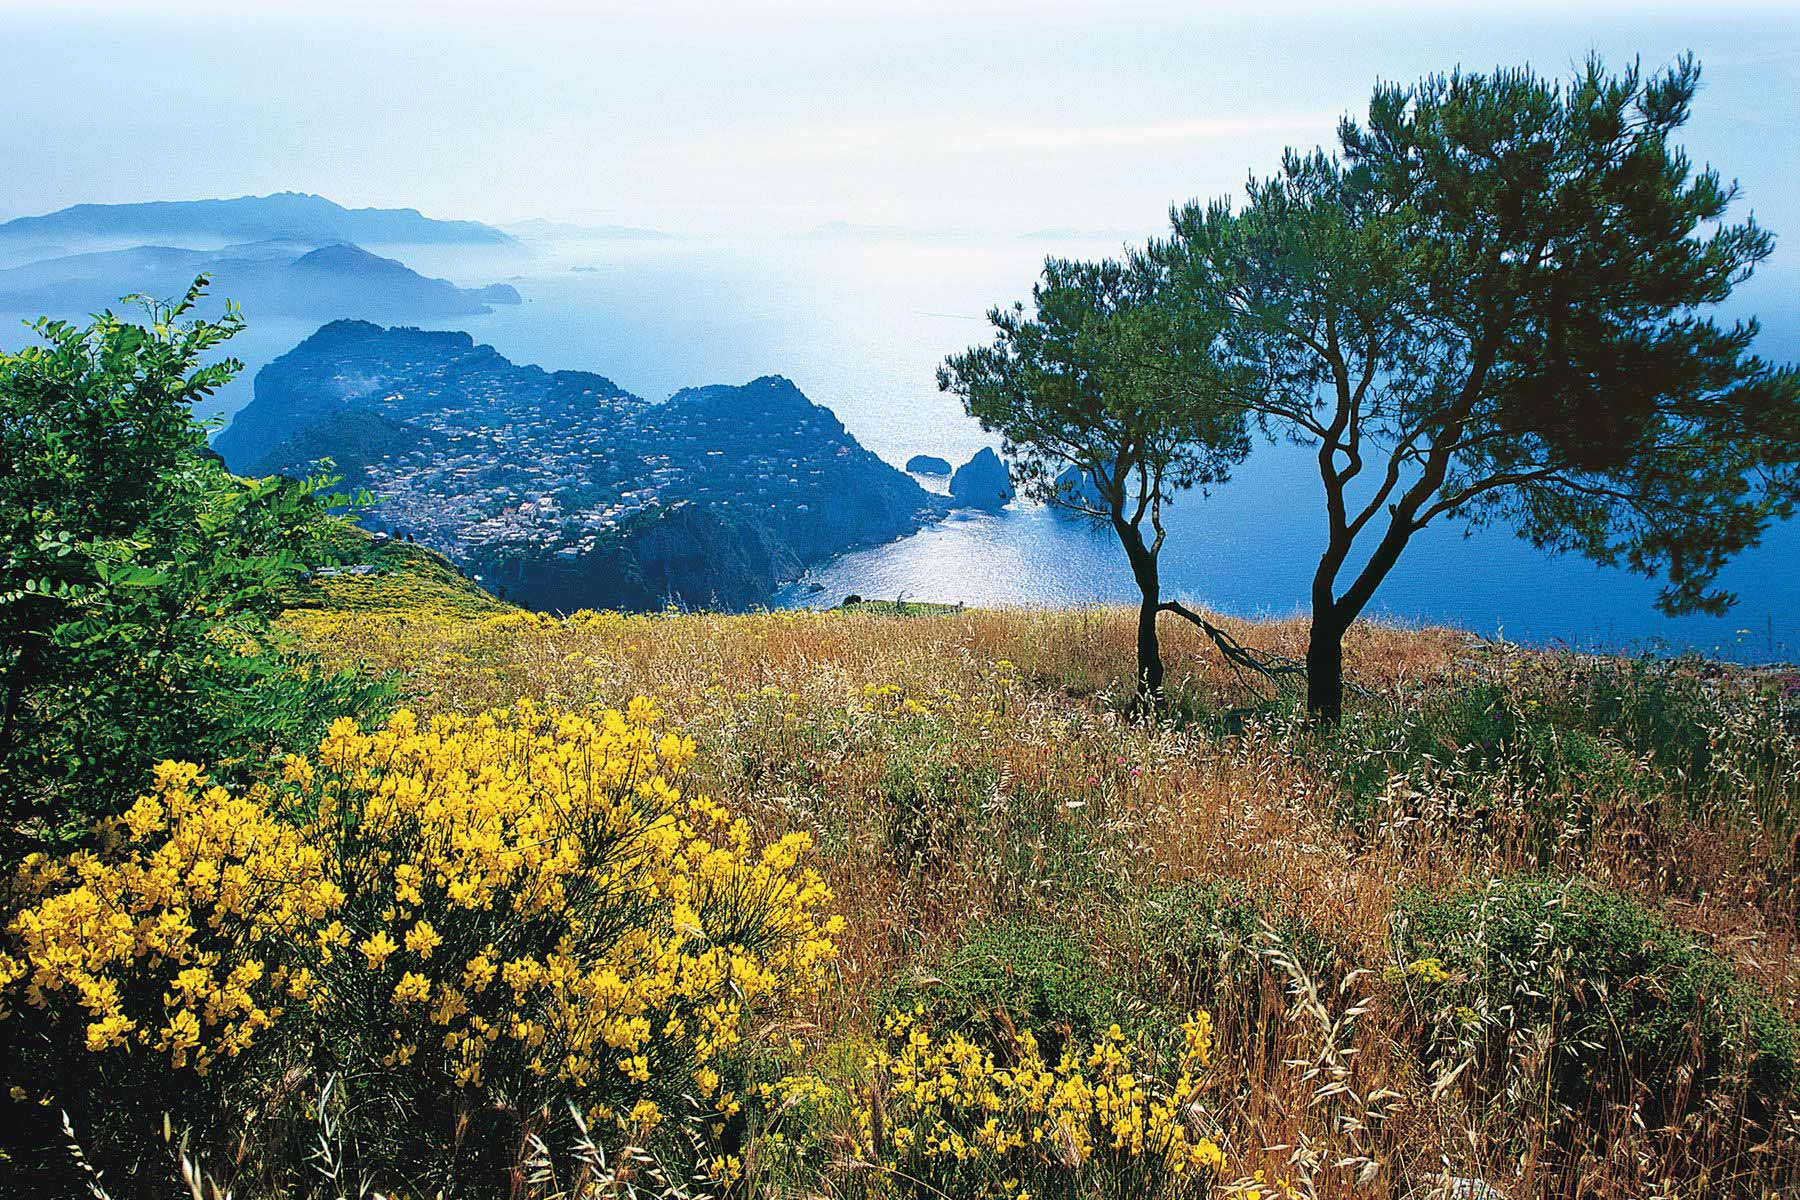 Spring time on the Amalfi Coast